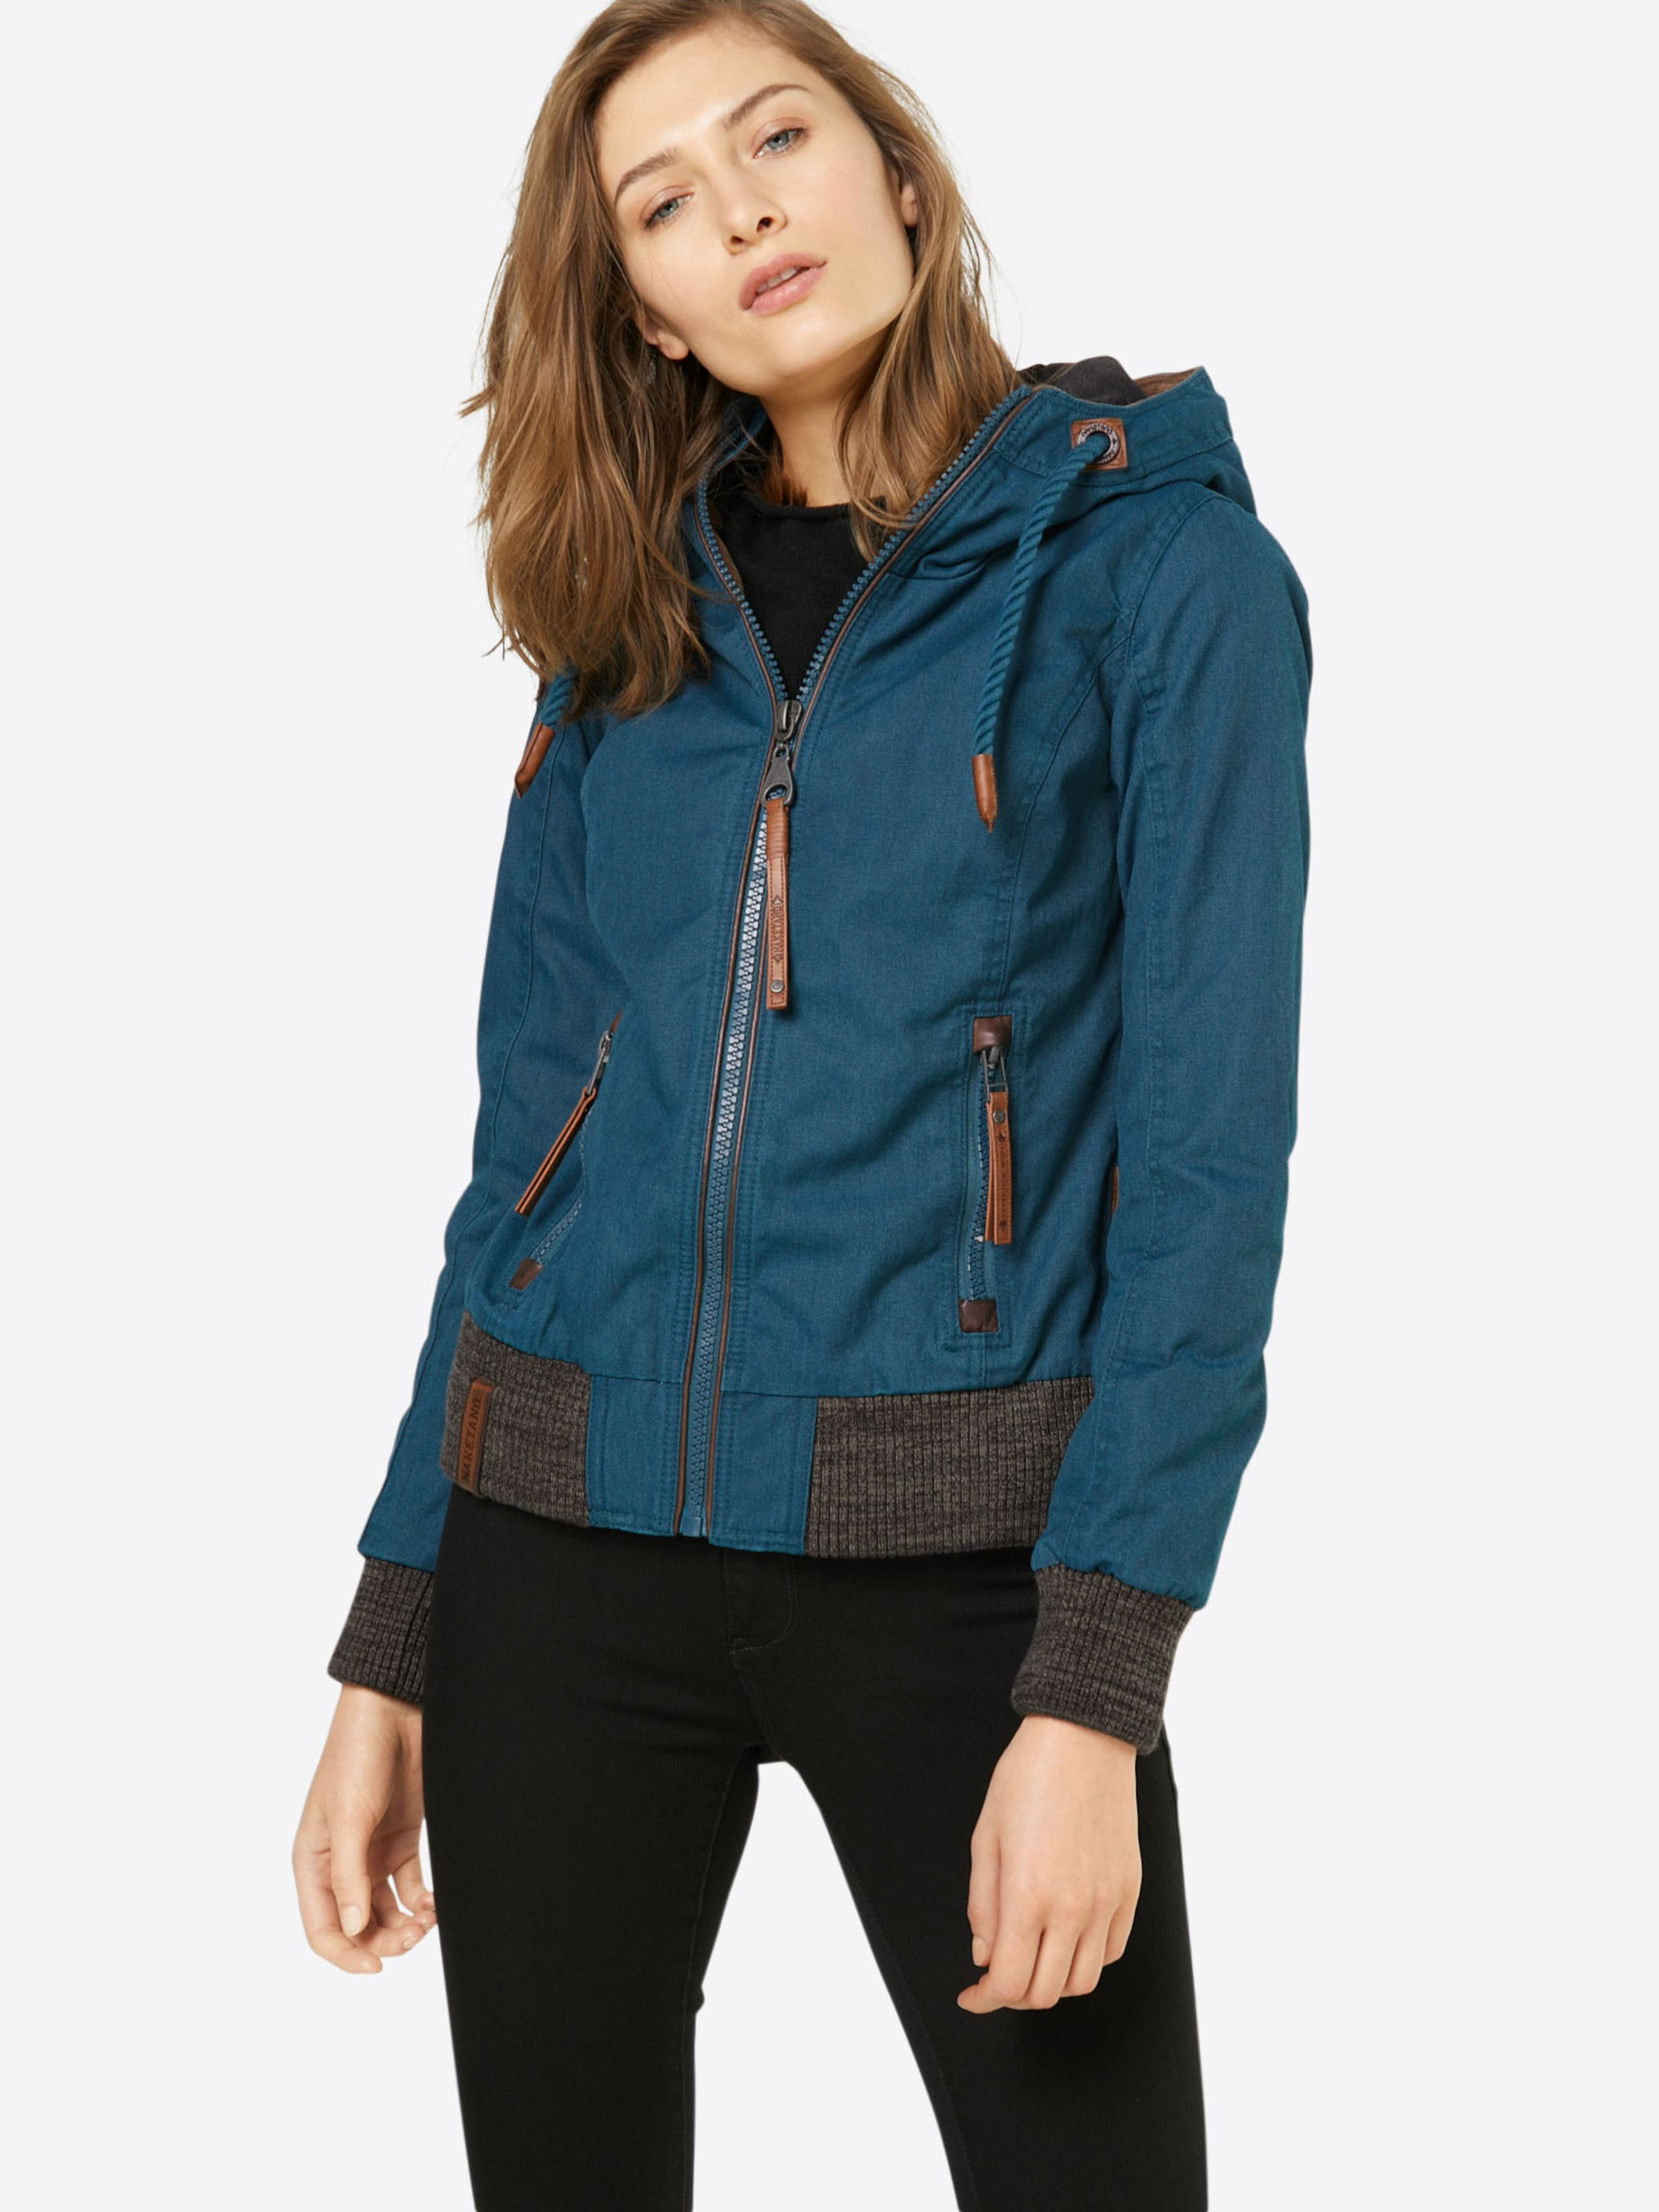 Defeat' In Made Blue For Denim 'not Naketano Jacke vm8nNPy0wO